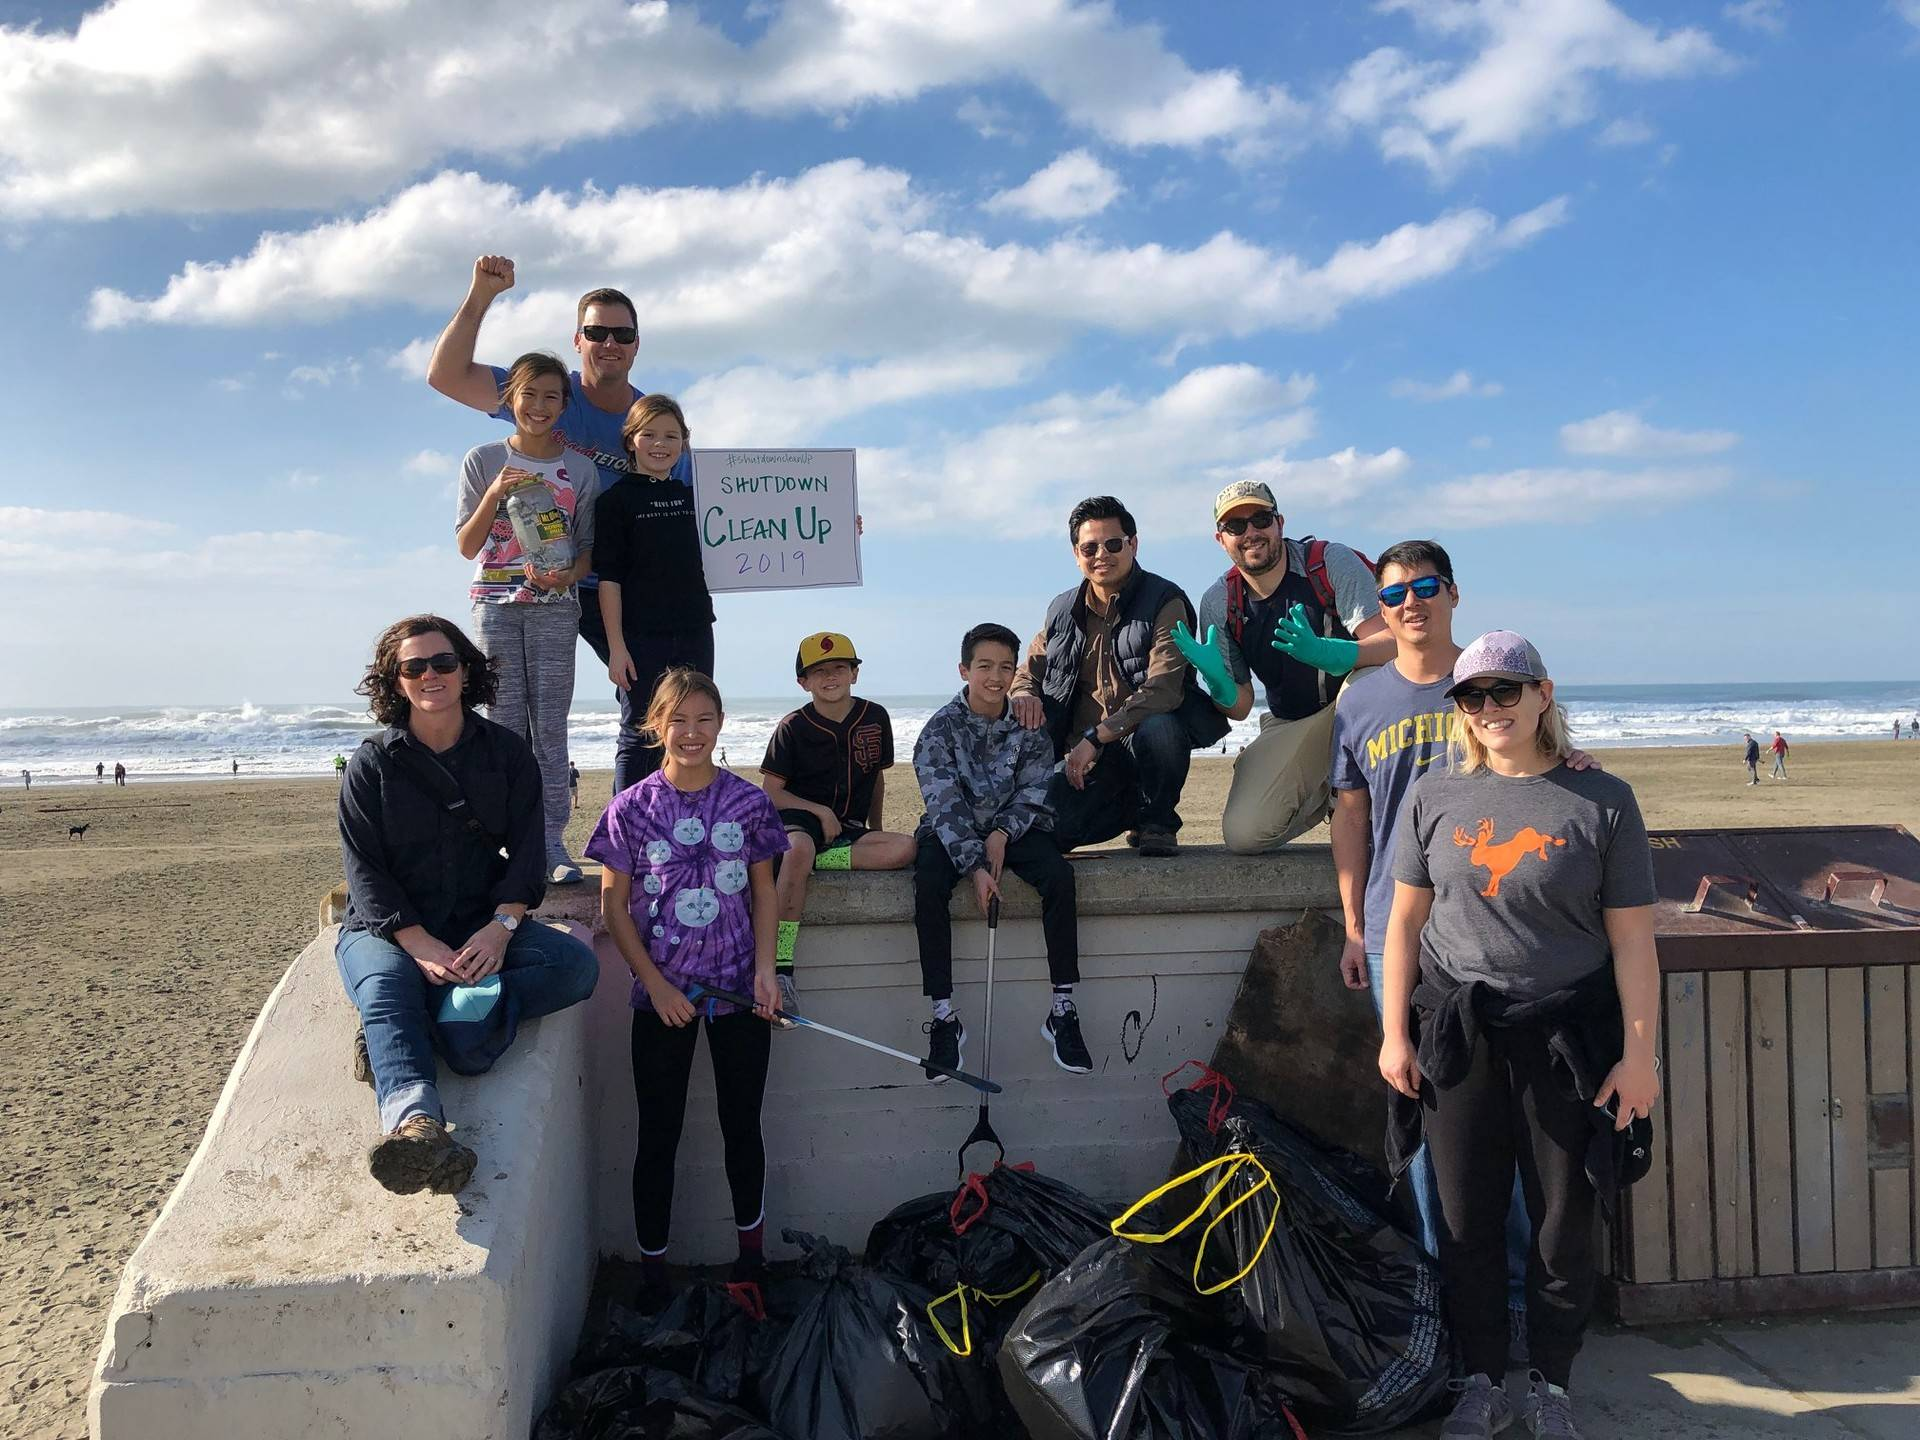 Volunteers picked up trash at Ocean Beach on Jan. 17, 2019, in a cleanup organized by #ShutdownCleanup. Courtesy ShutdownCleanup